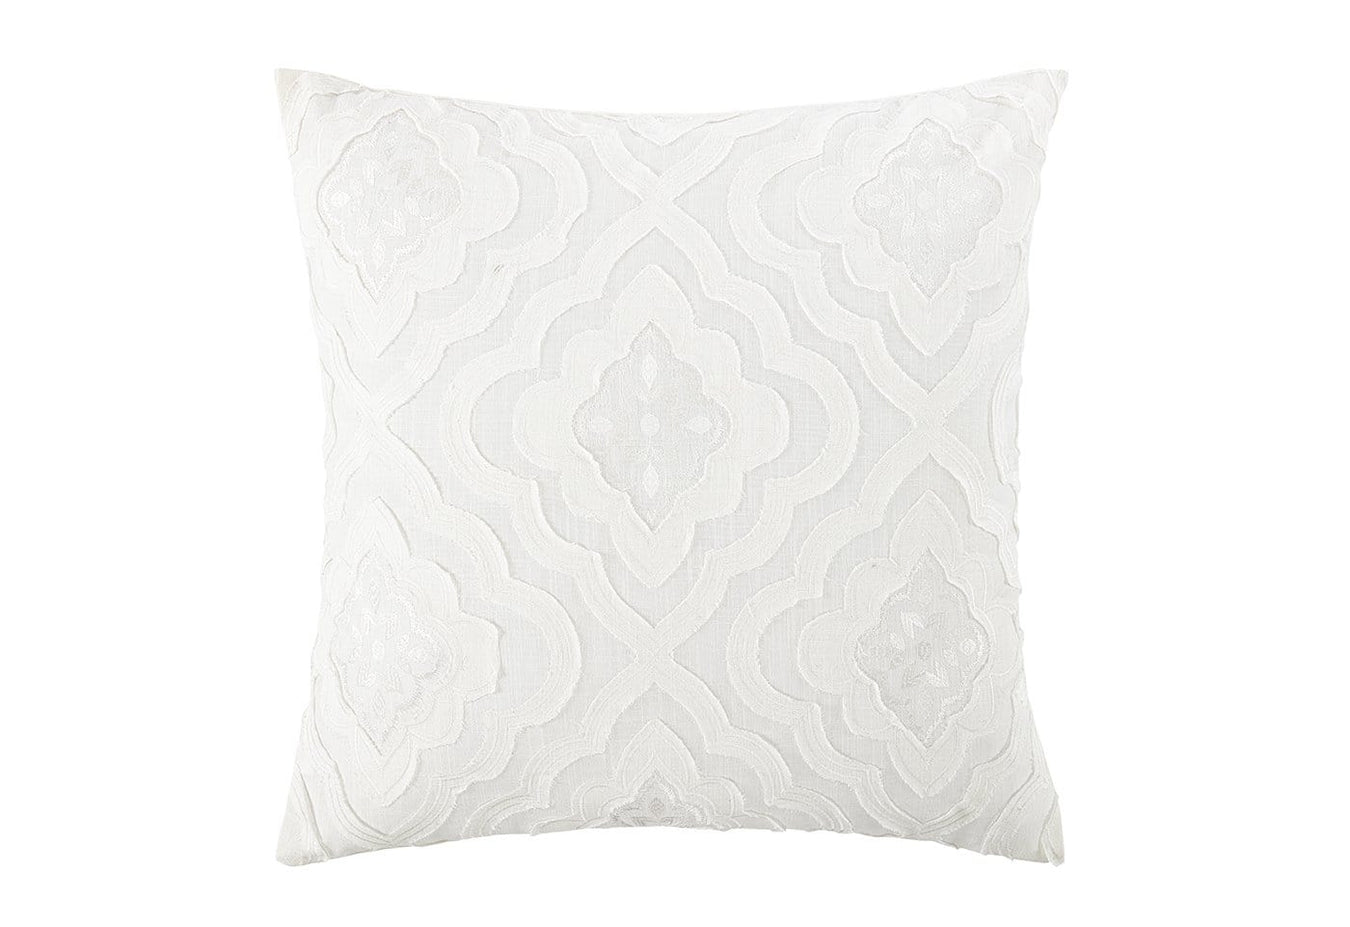 Mystic 20 x 20 Decorative Pillow Cover